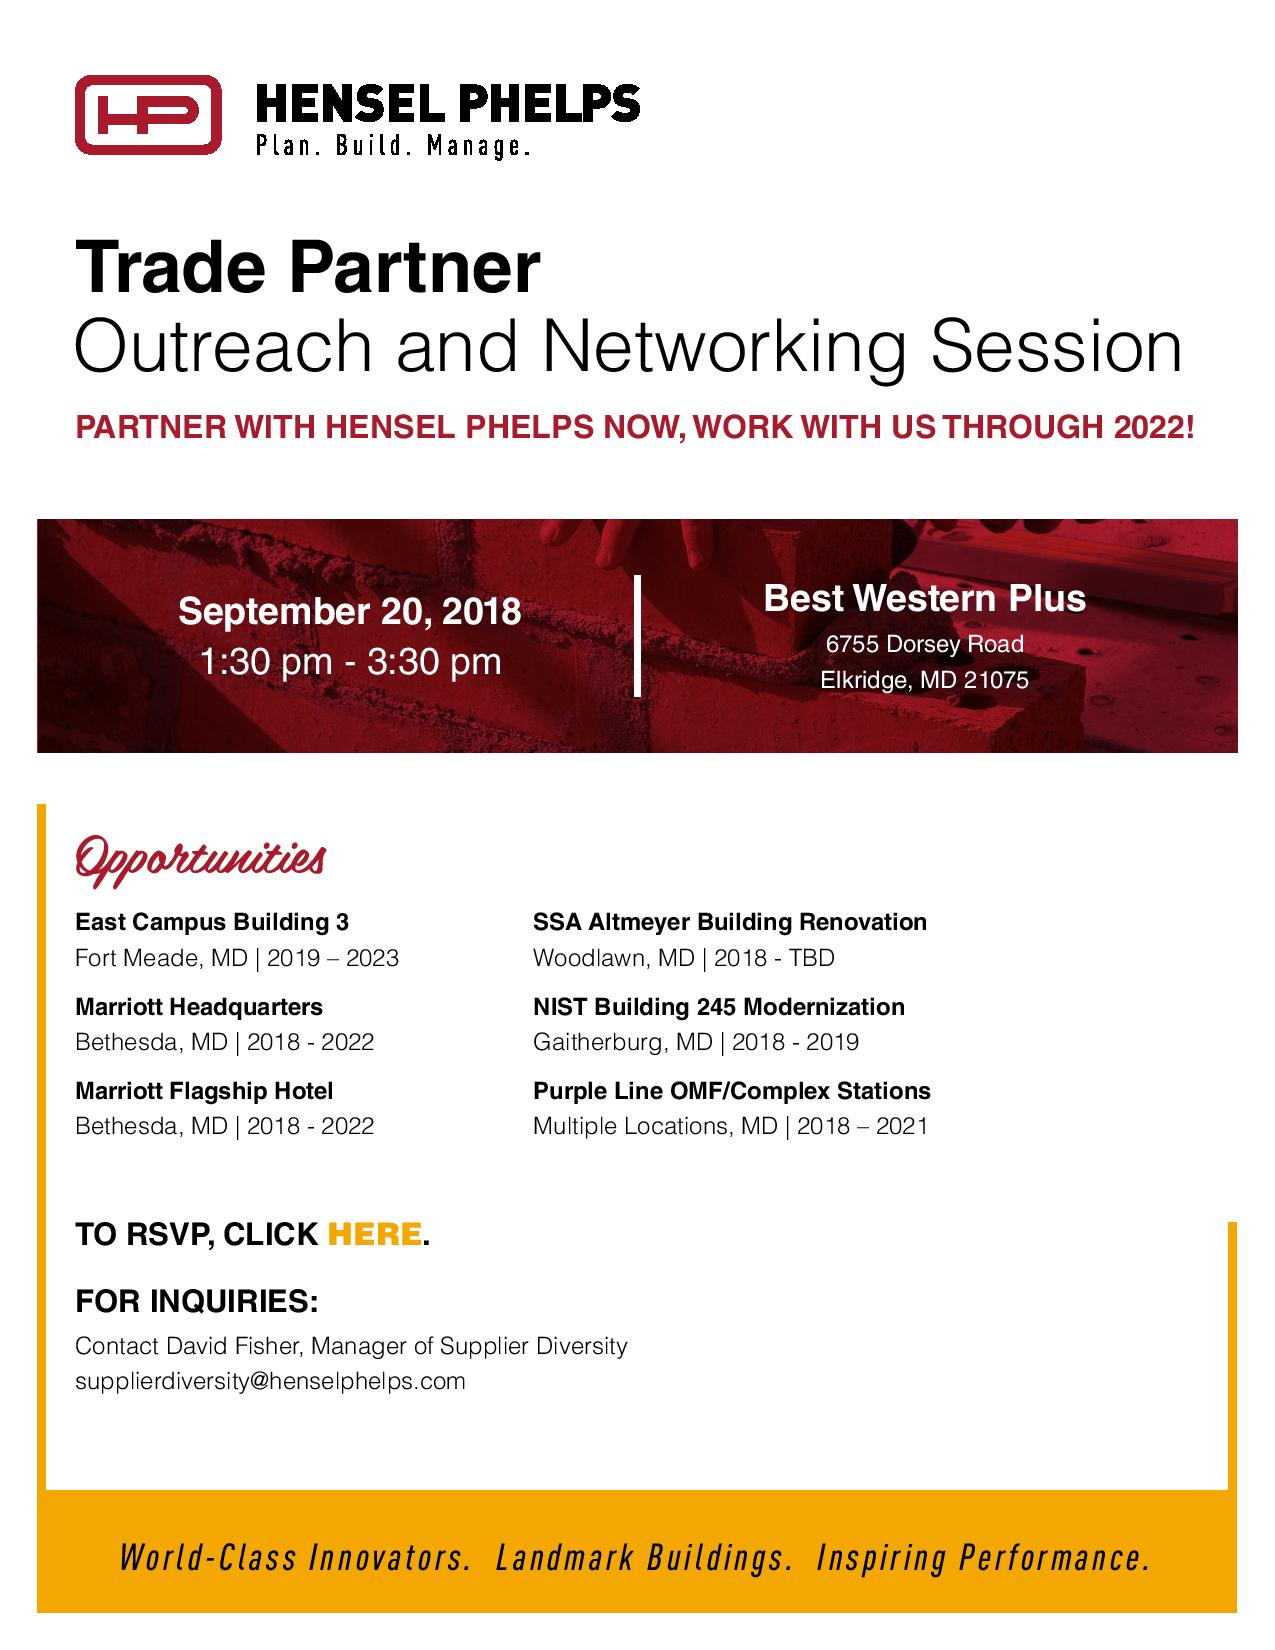 Hensel+Phelps+Outreach+Session.sept202018-page-001.jpg